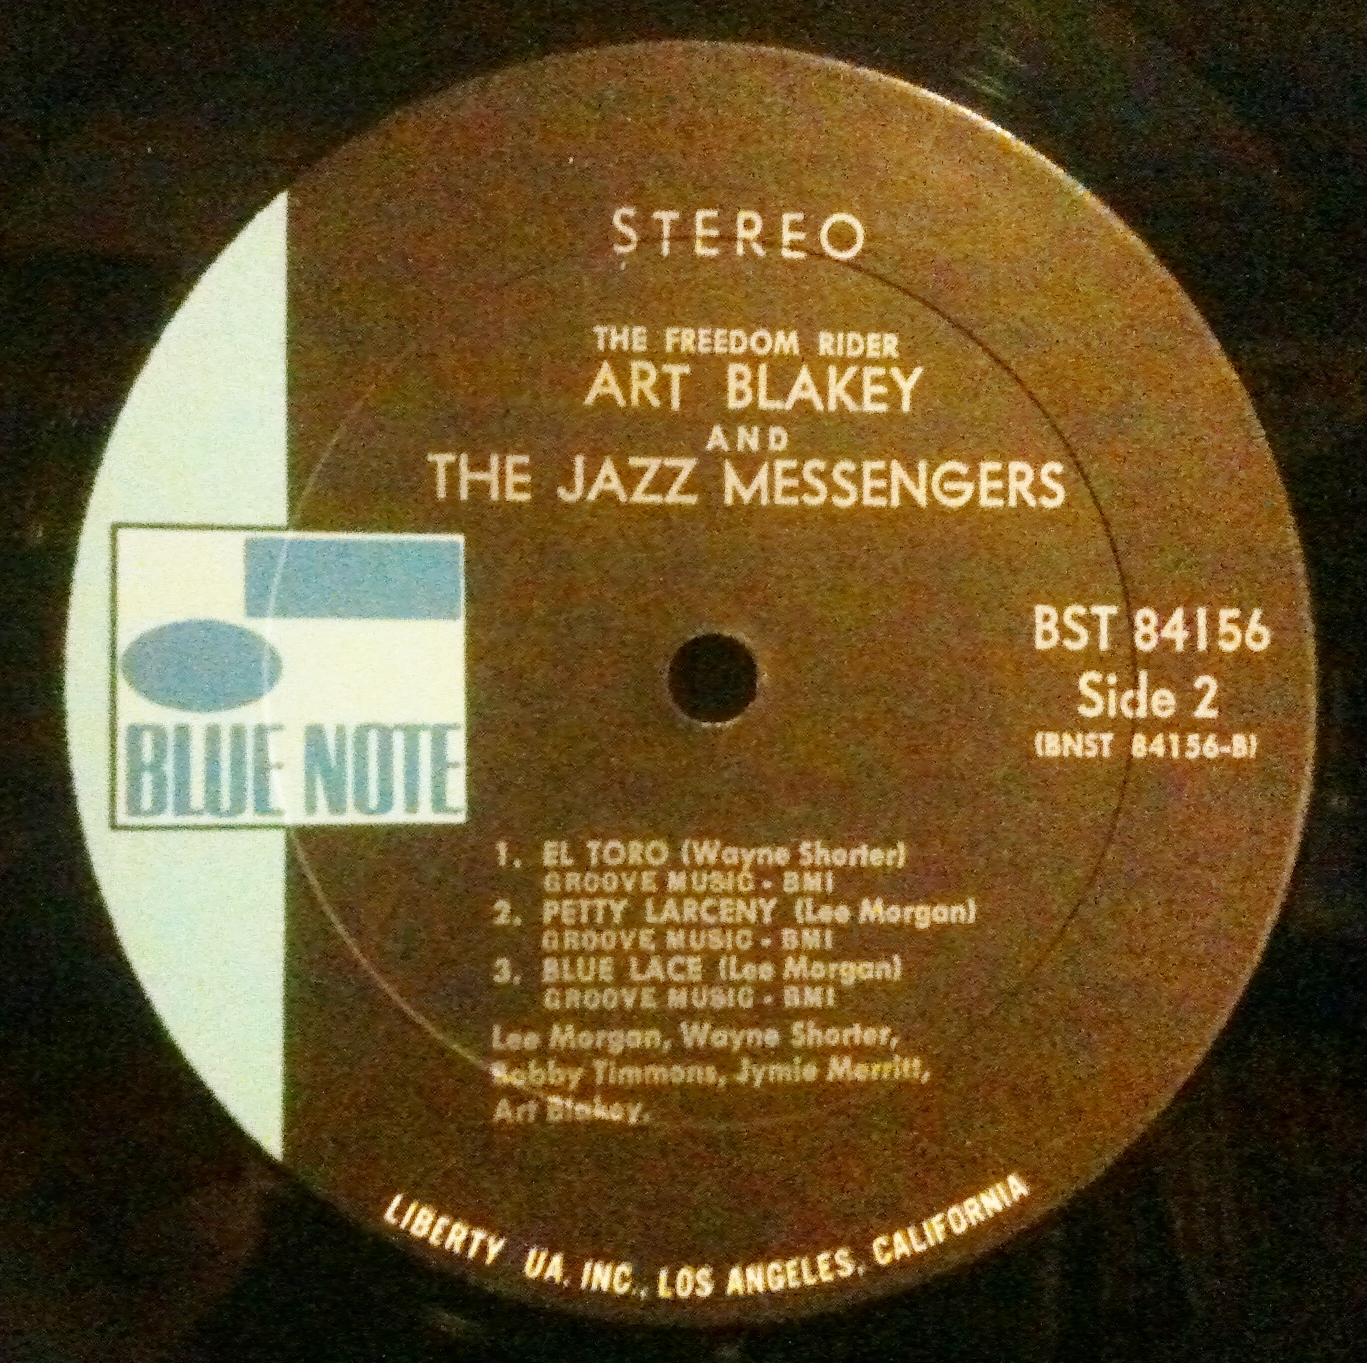 Blue Note Record Collector: Vintage Blue Note Record Label